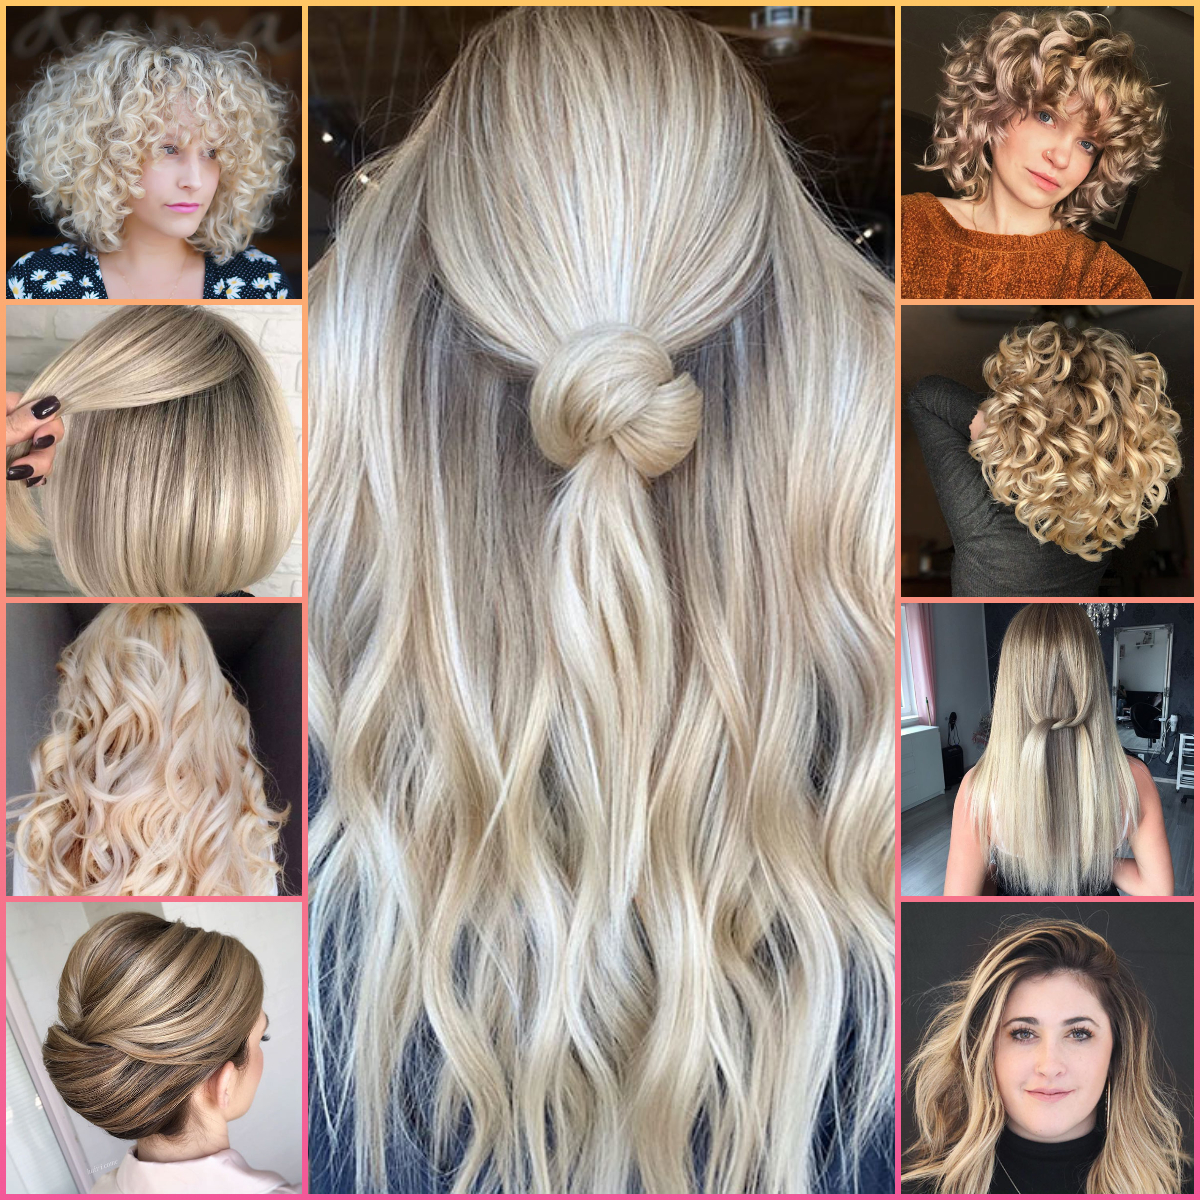 Top 12+ Stylish Blonde Hairstyles Shades 12 Images For Short